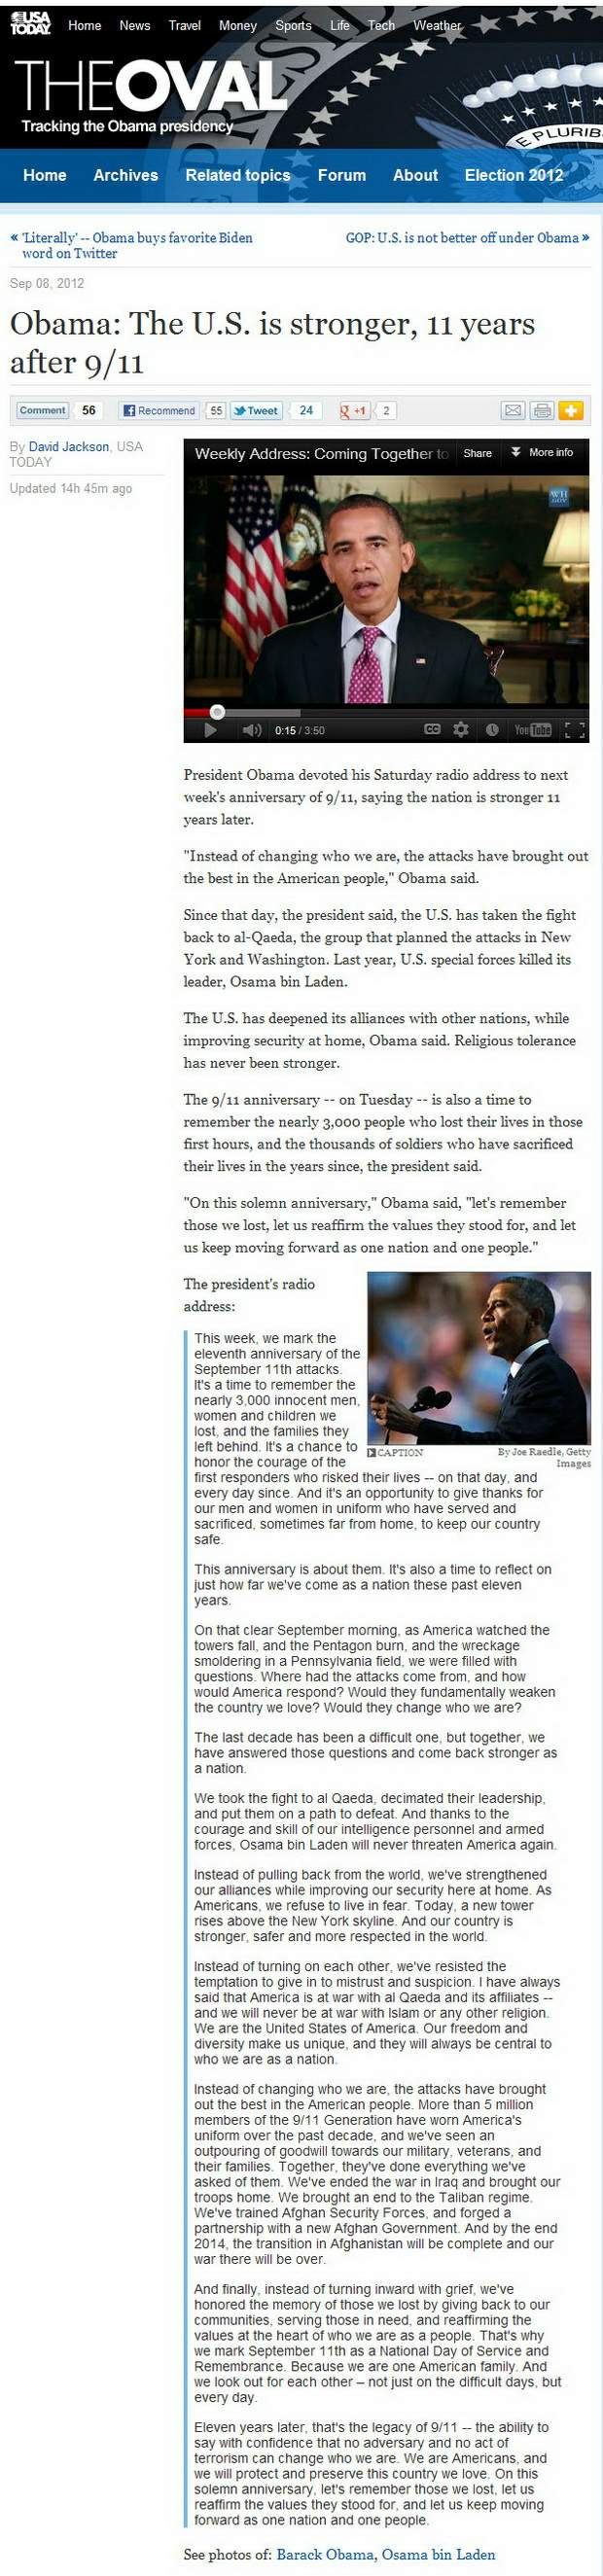 Obama:The U.S. is stronger, 11 years after 9/11-2012.09.08